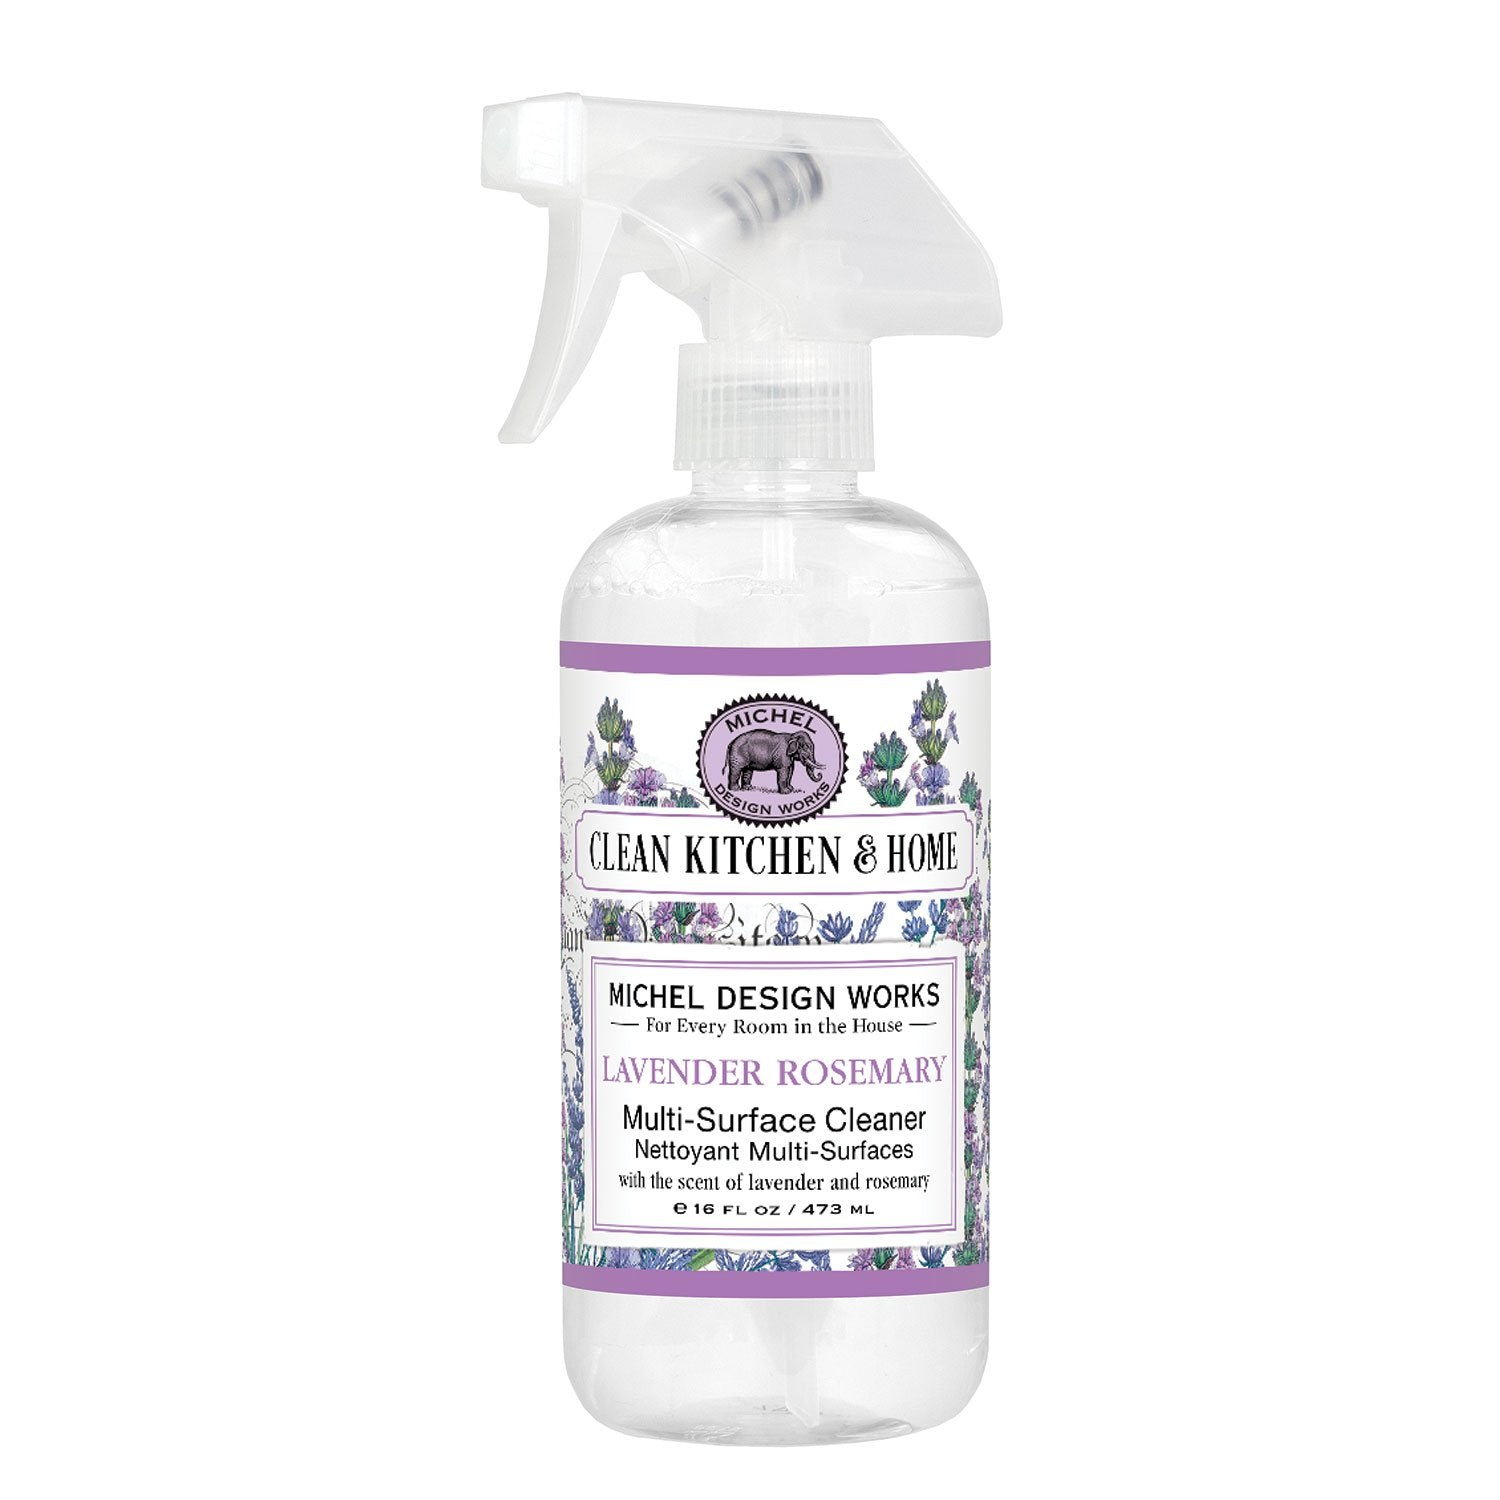 Michel Design Works Lavender & Rosemary Multi Surface Cleaner